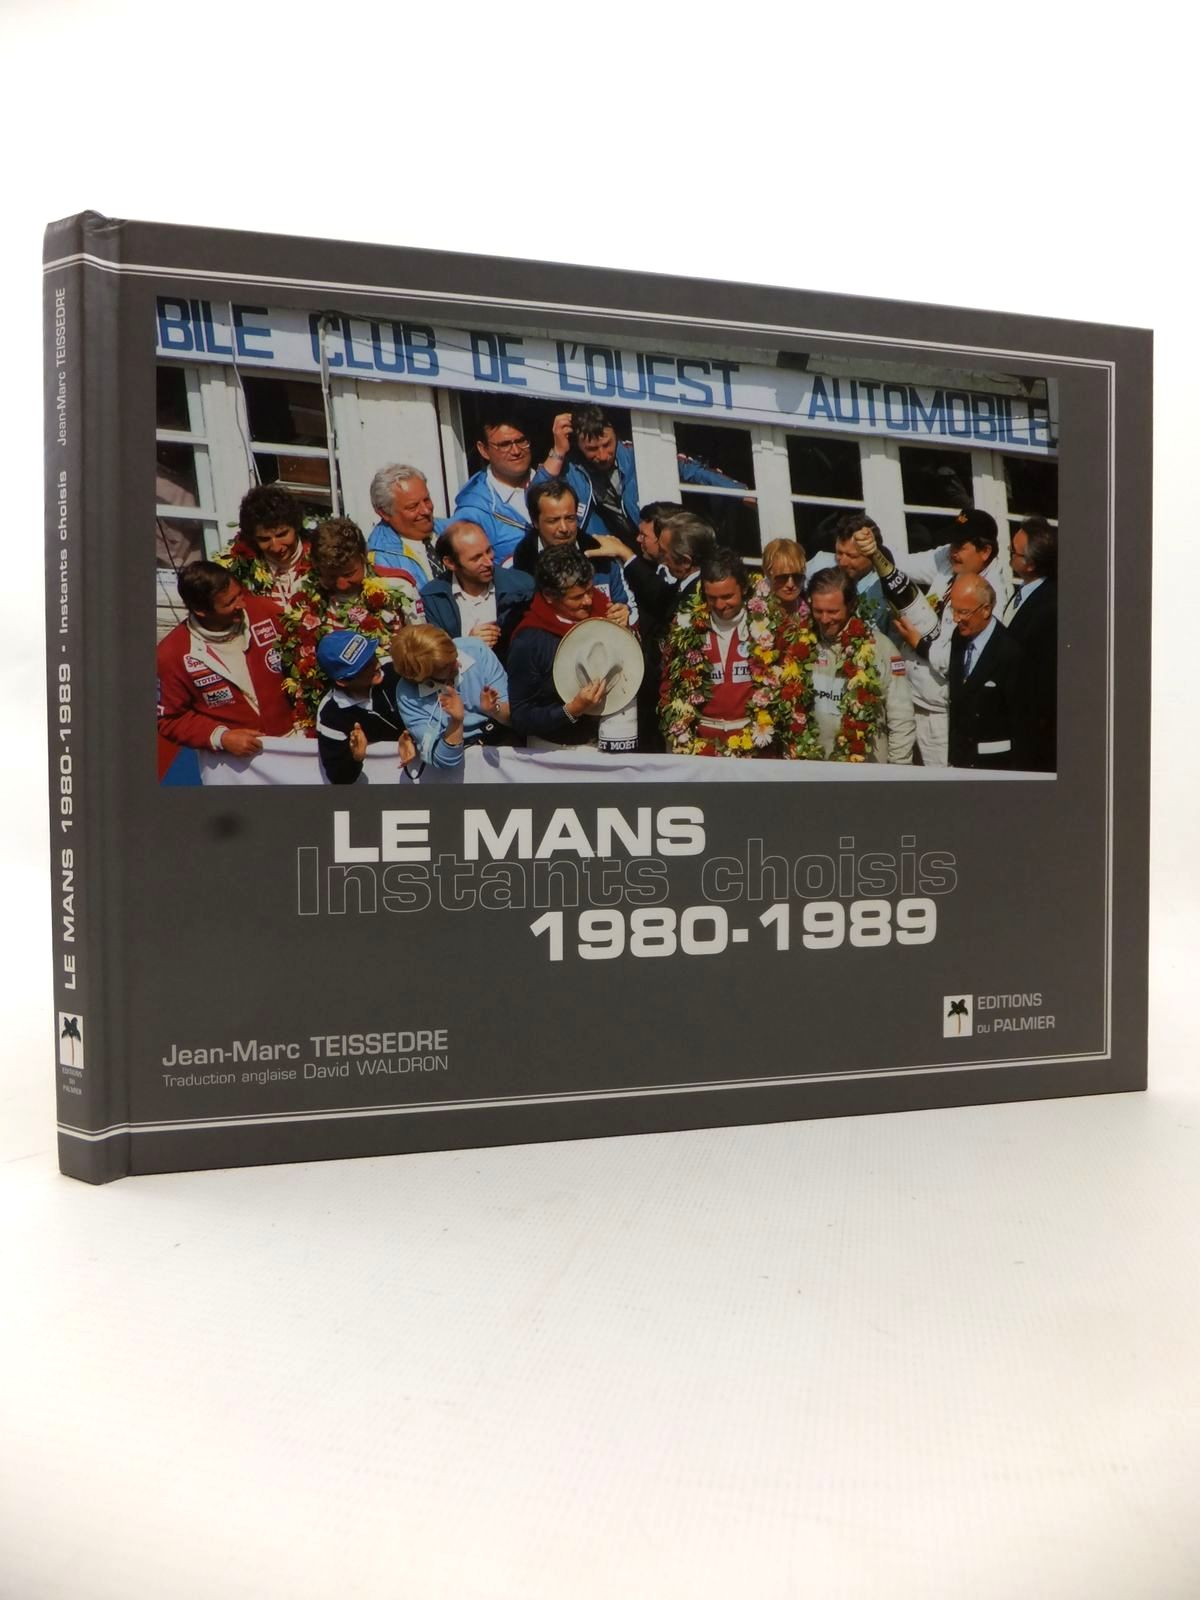 Photo of LE MANS 1980-1989: INSTANTS CHOISIS written by Teissedre, Jean-Marc published by Editions Du Palmier (STOCK CODE: 1813384)  for sale by Stella & Rose's Books